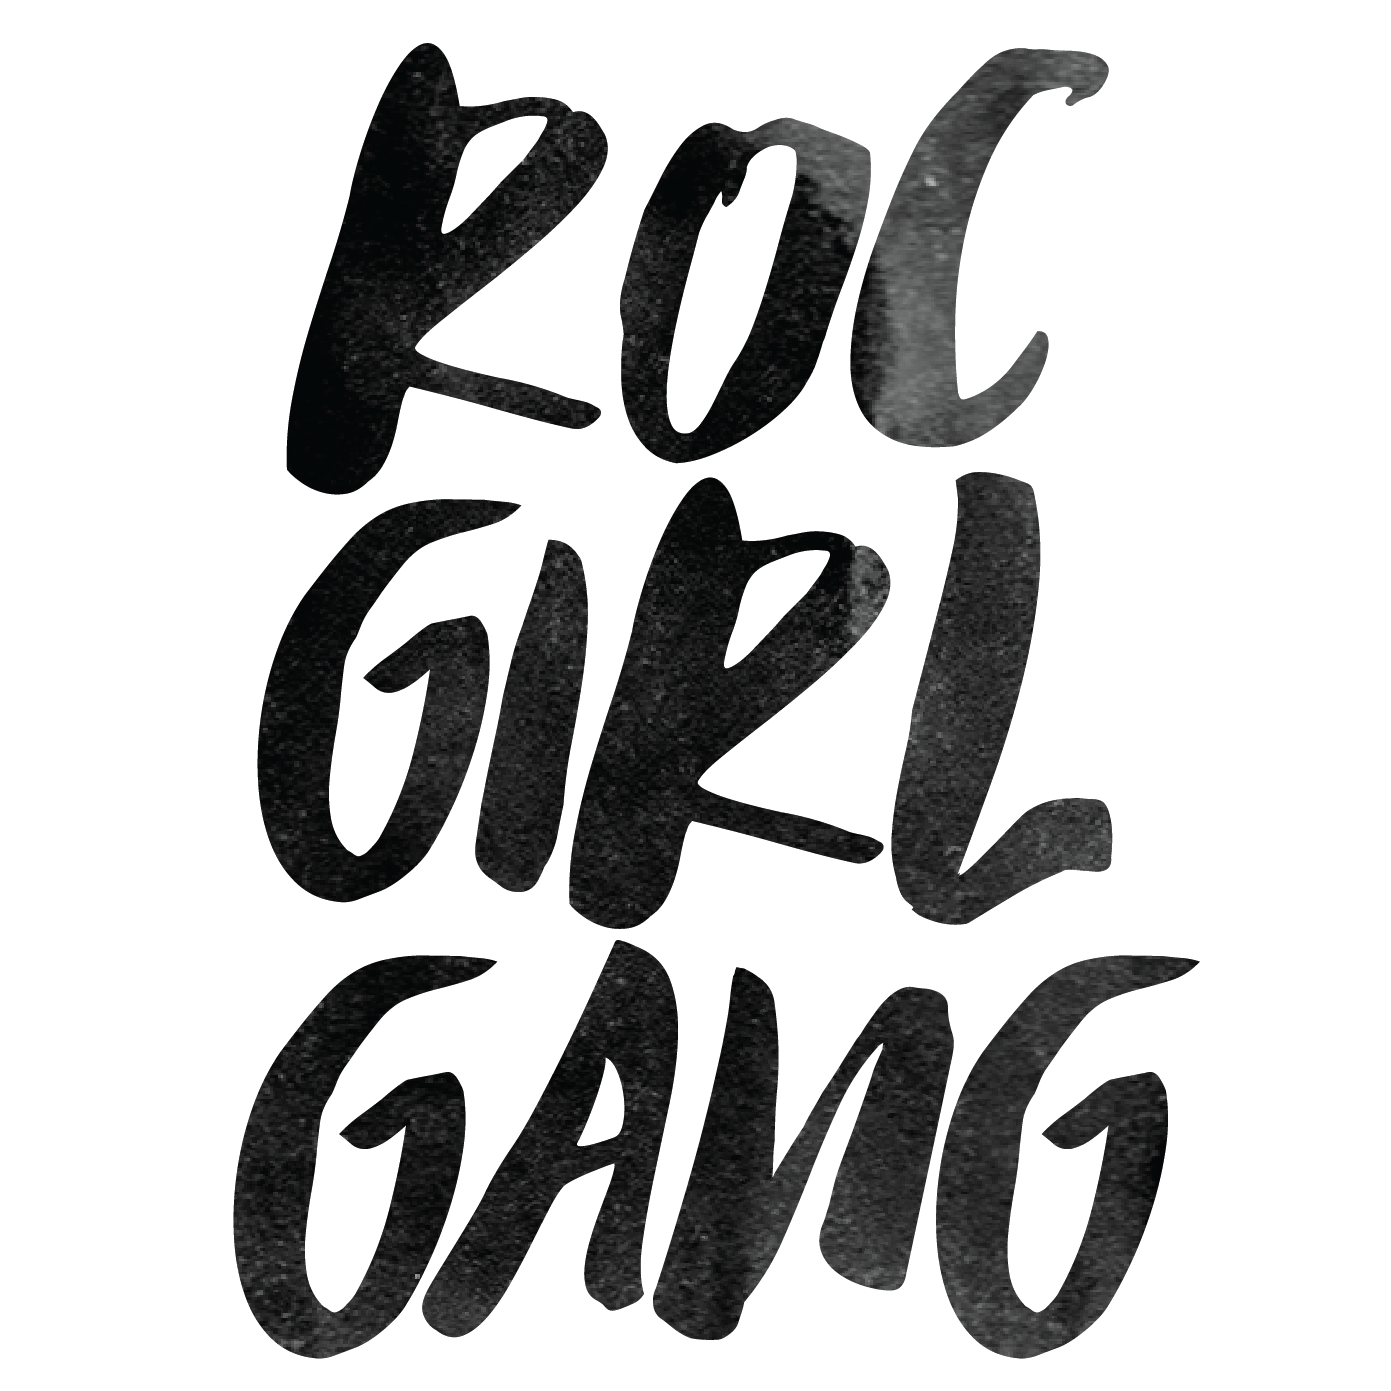 Roc Girl Gang